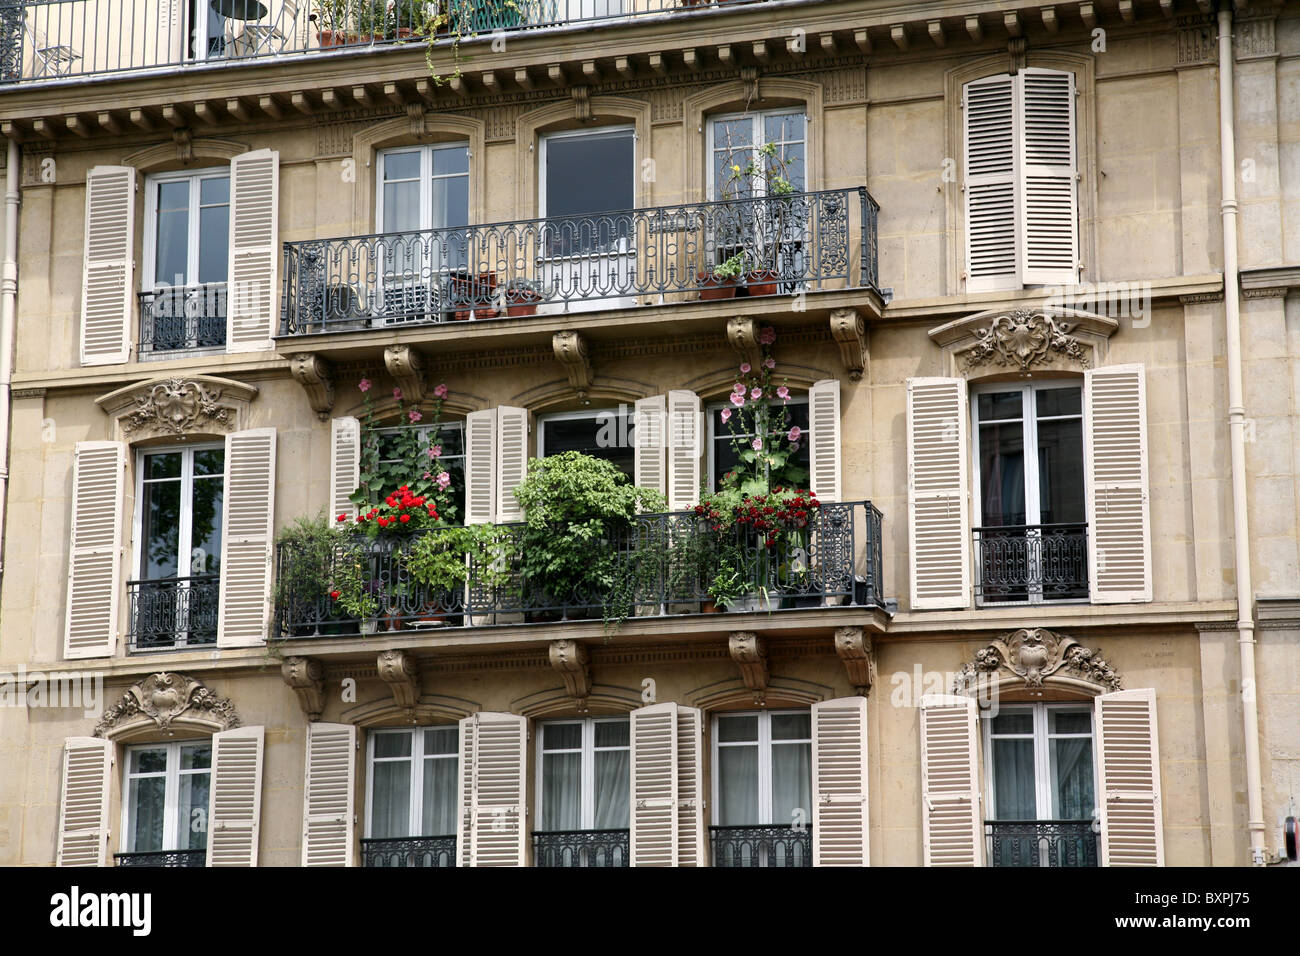 Paris apartment building balcony with flowers stock photo for Building balcony